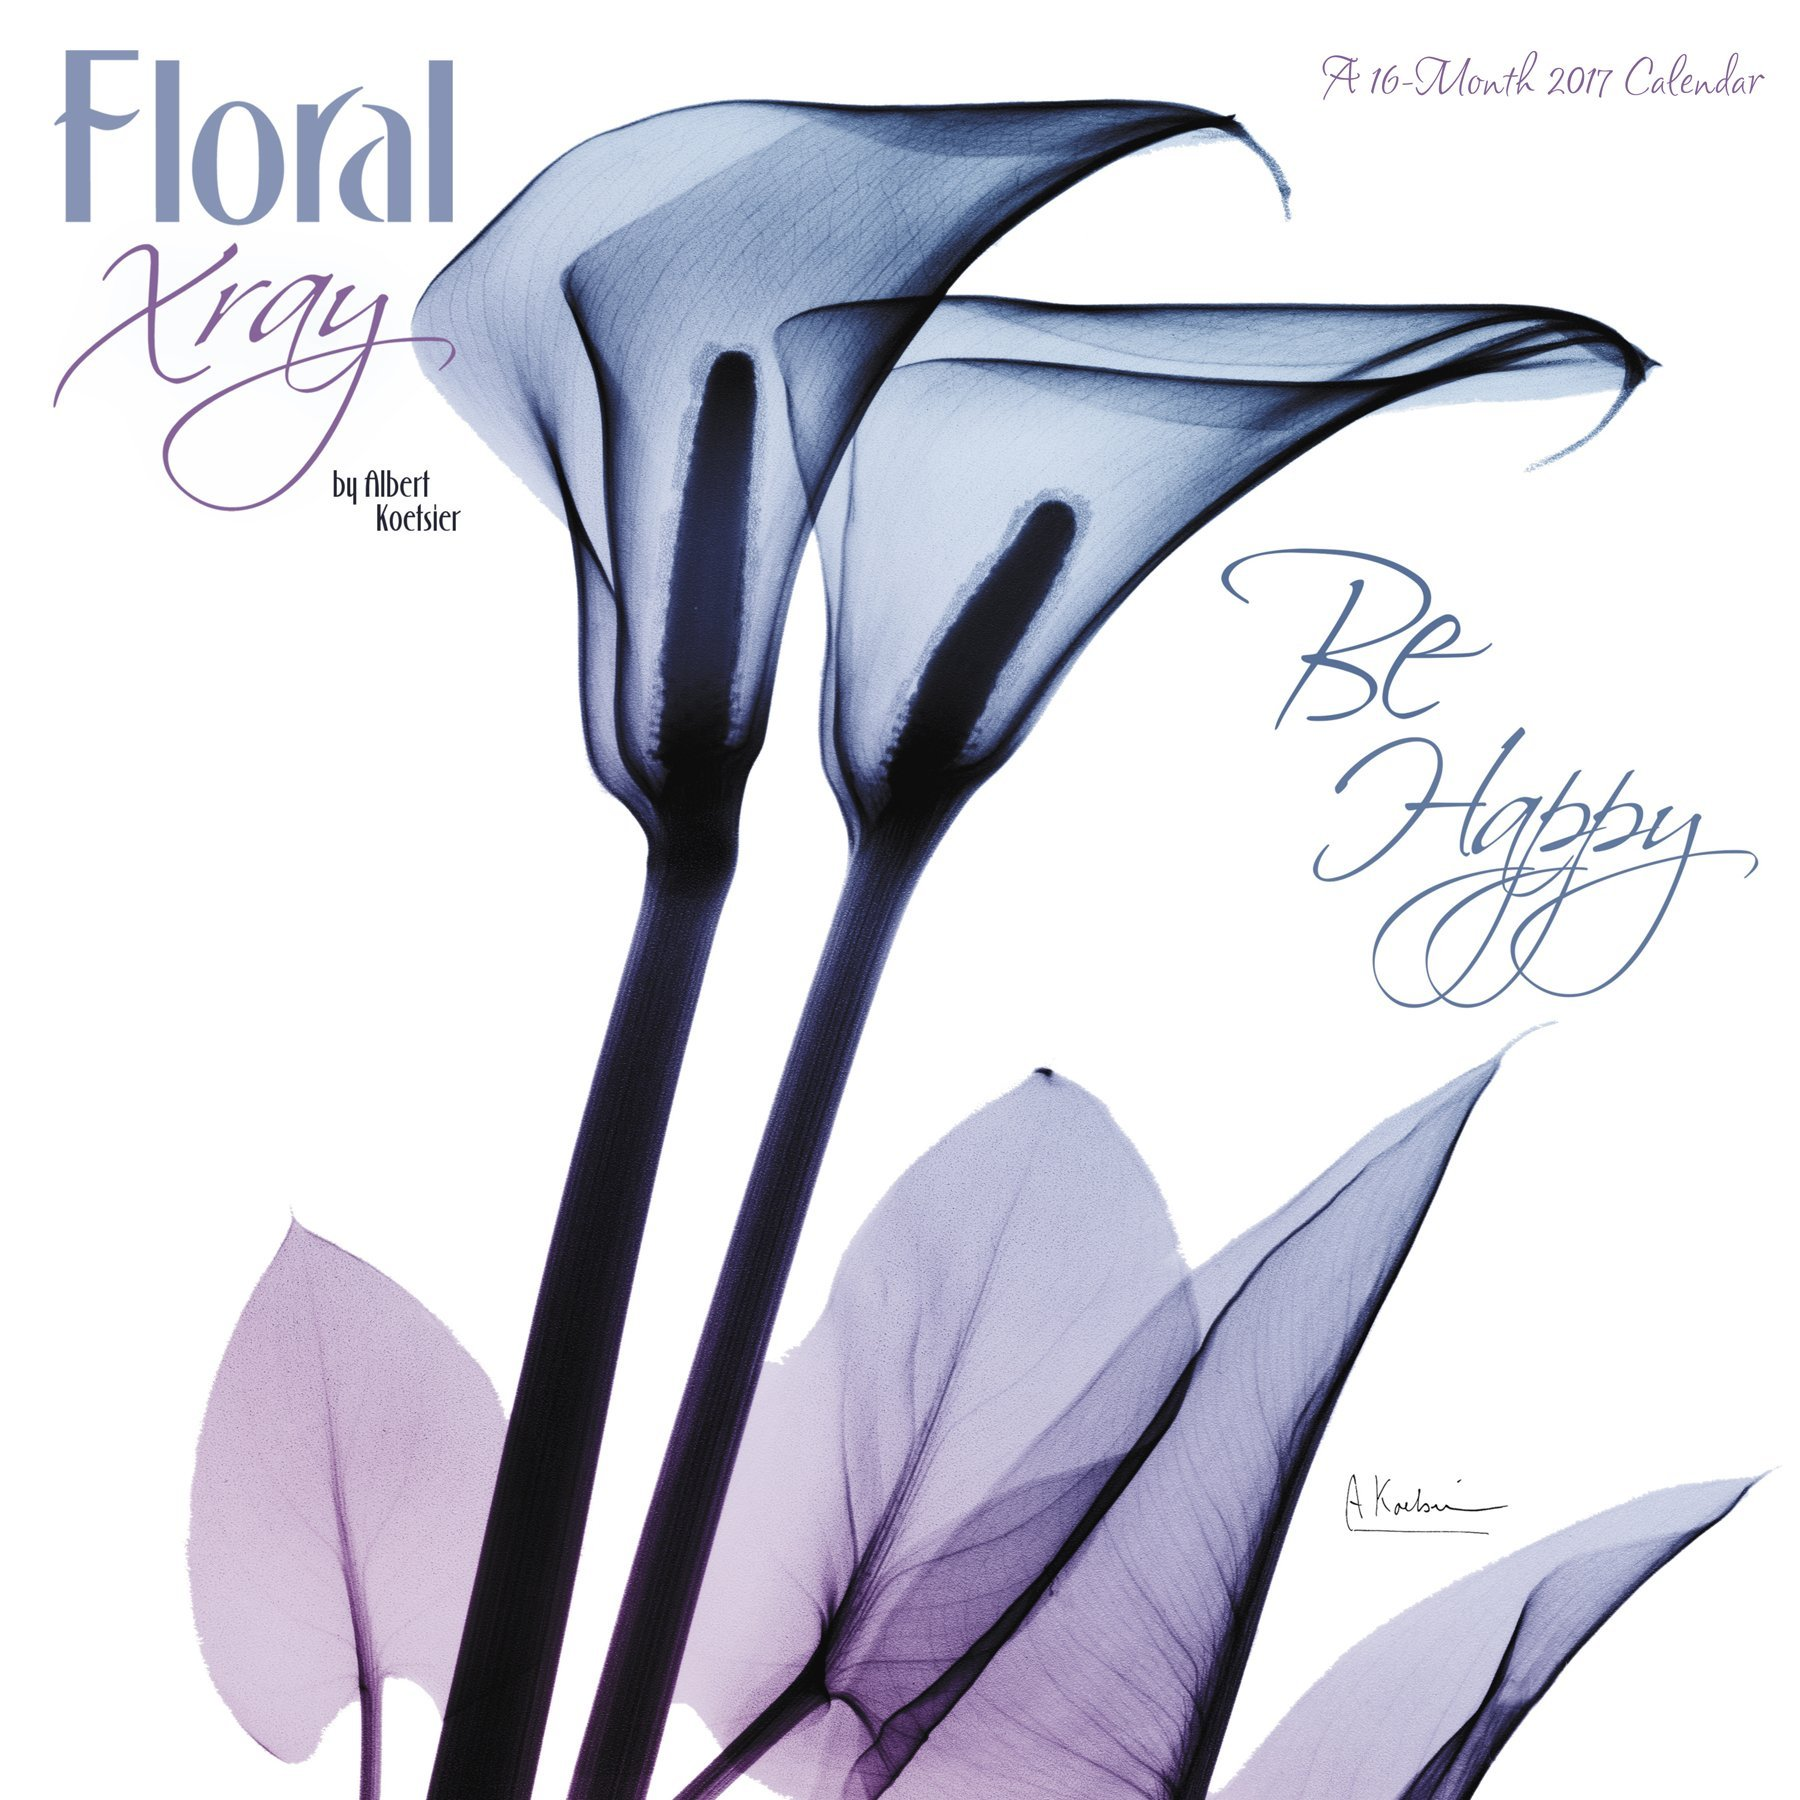 Floral Xray Wall Calendar Mead